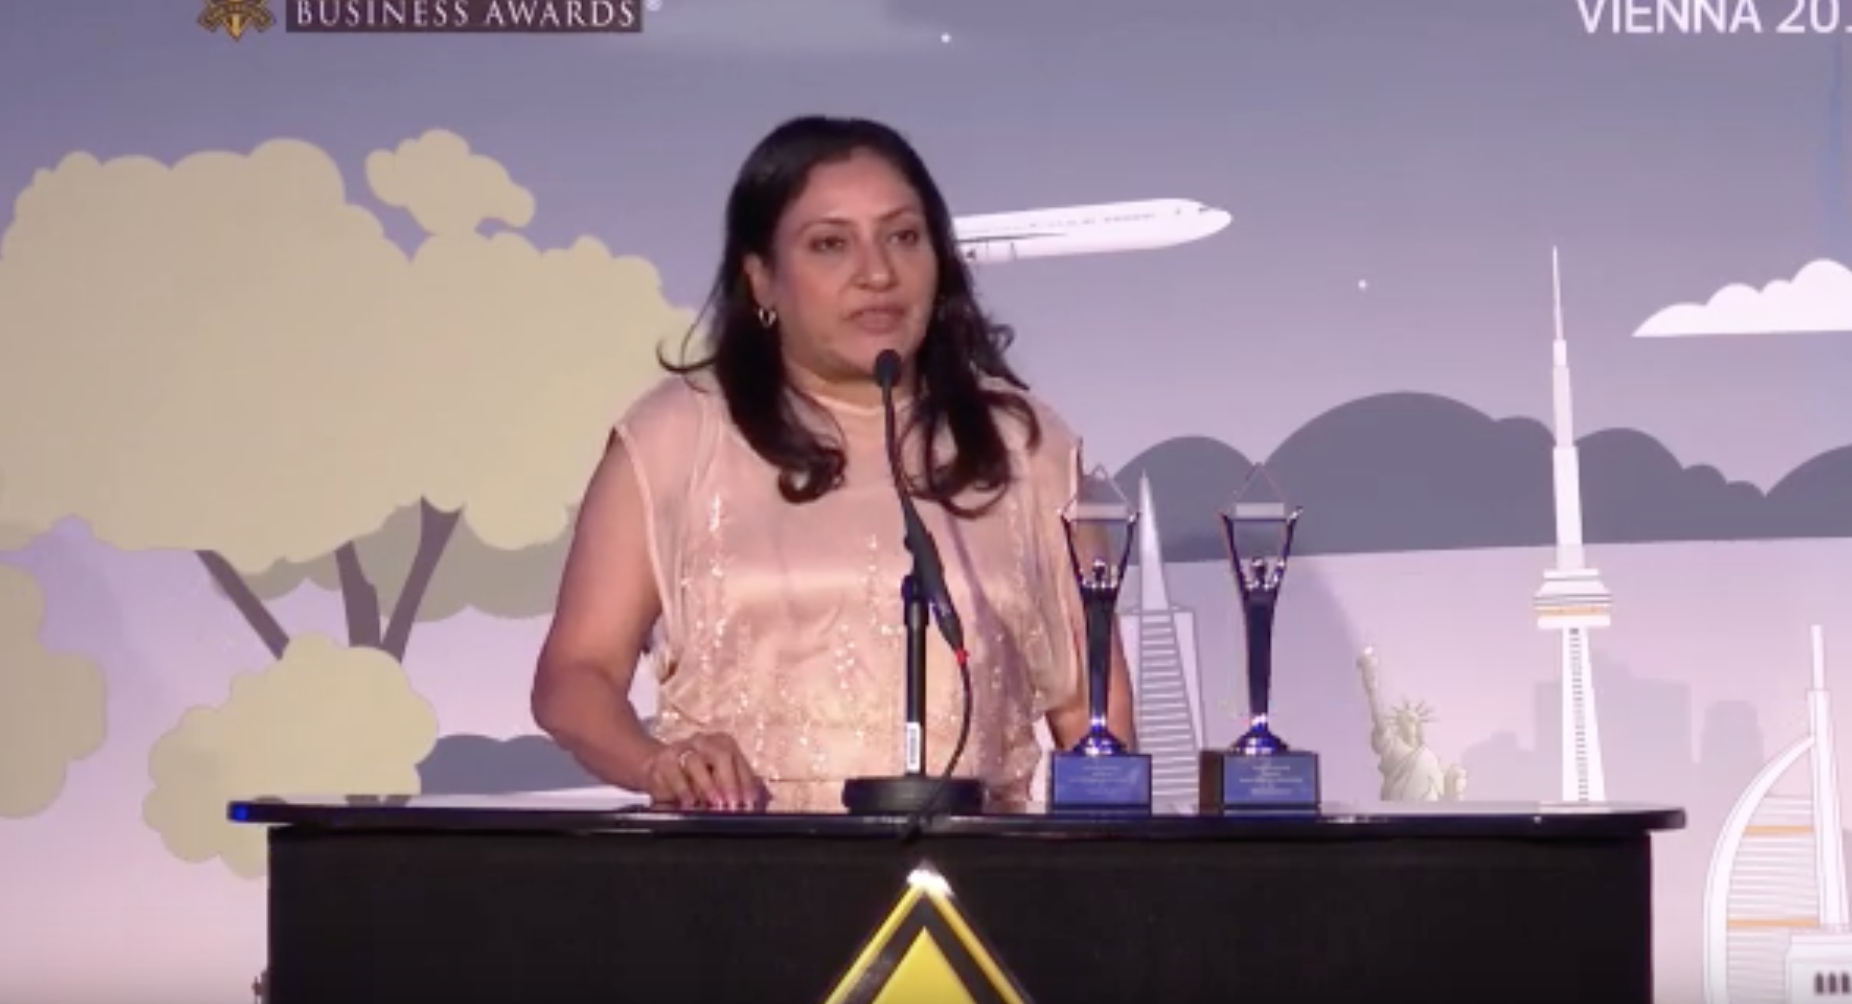 Dr. Jaya Vaidhyanathan, CEO – BCT Digital | Award Presentation | The Stevies 2019